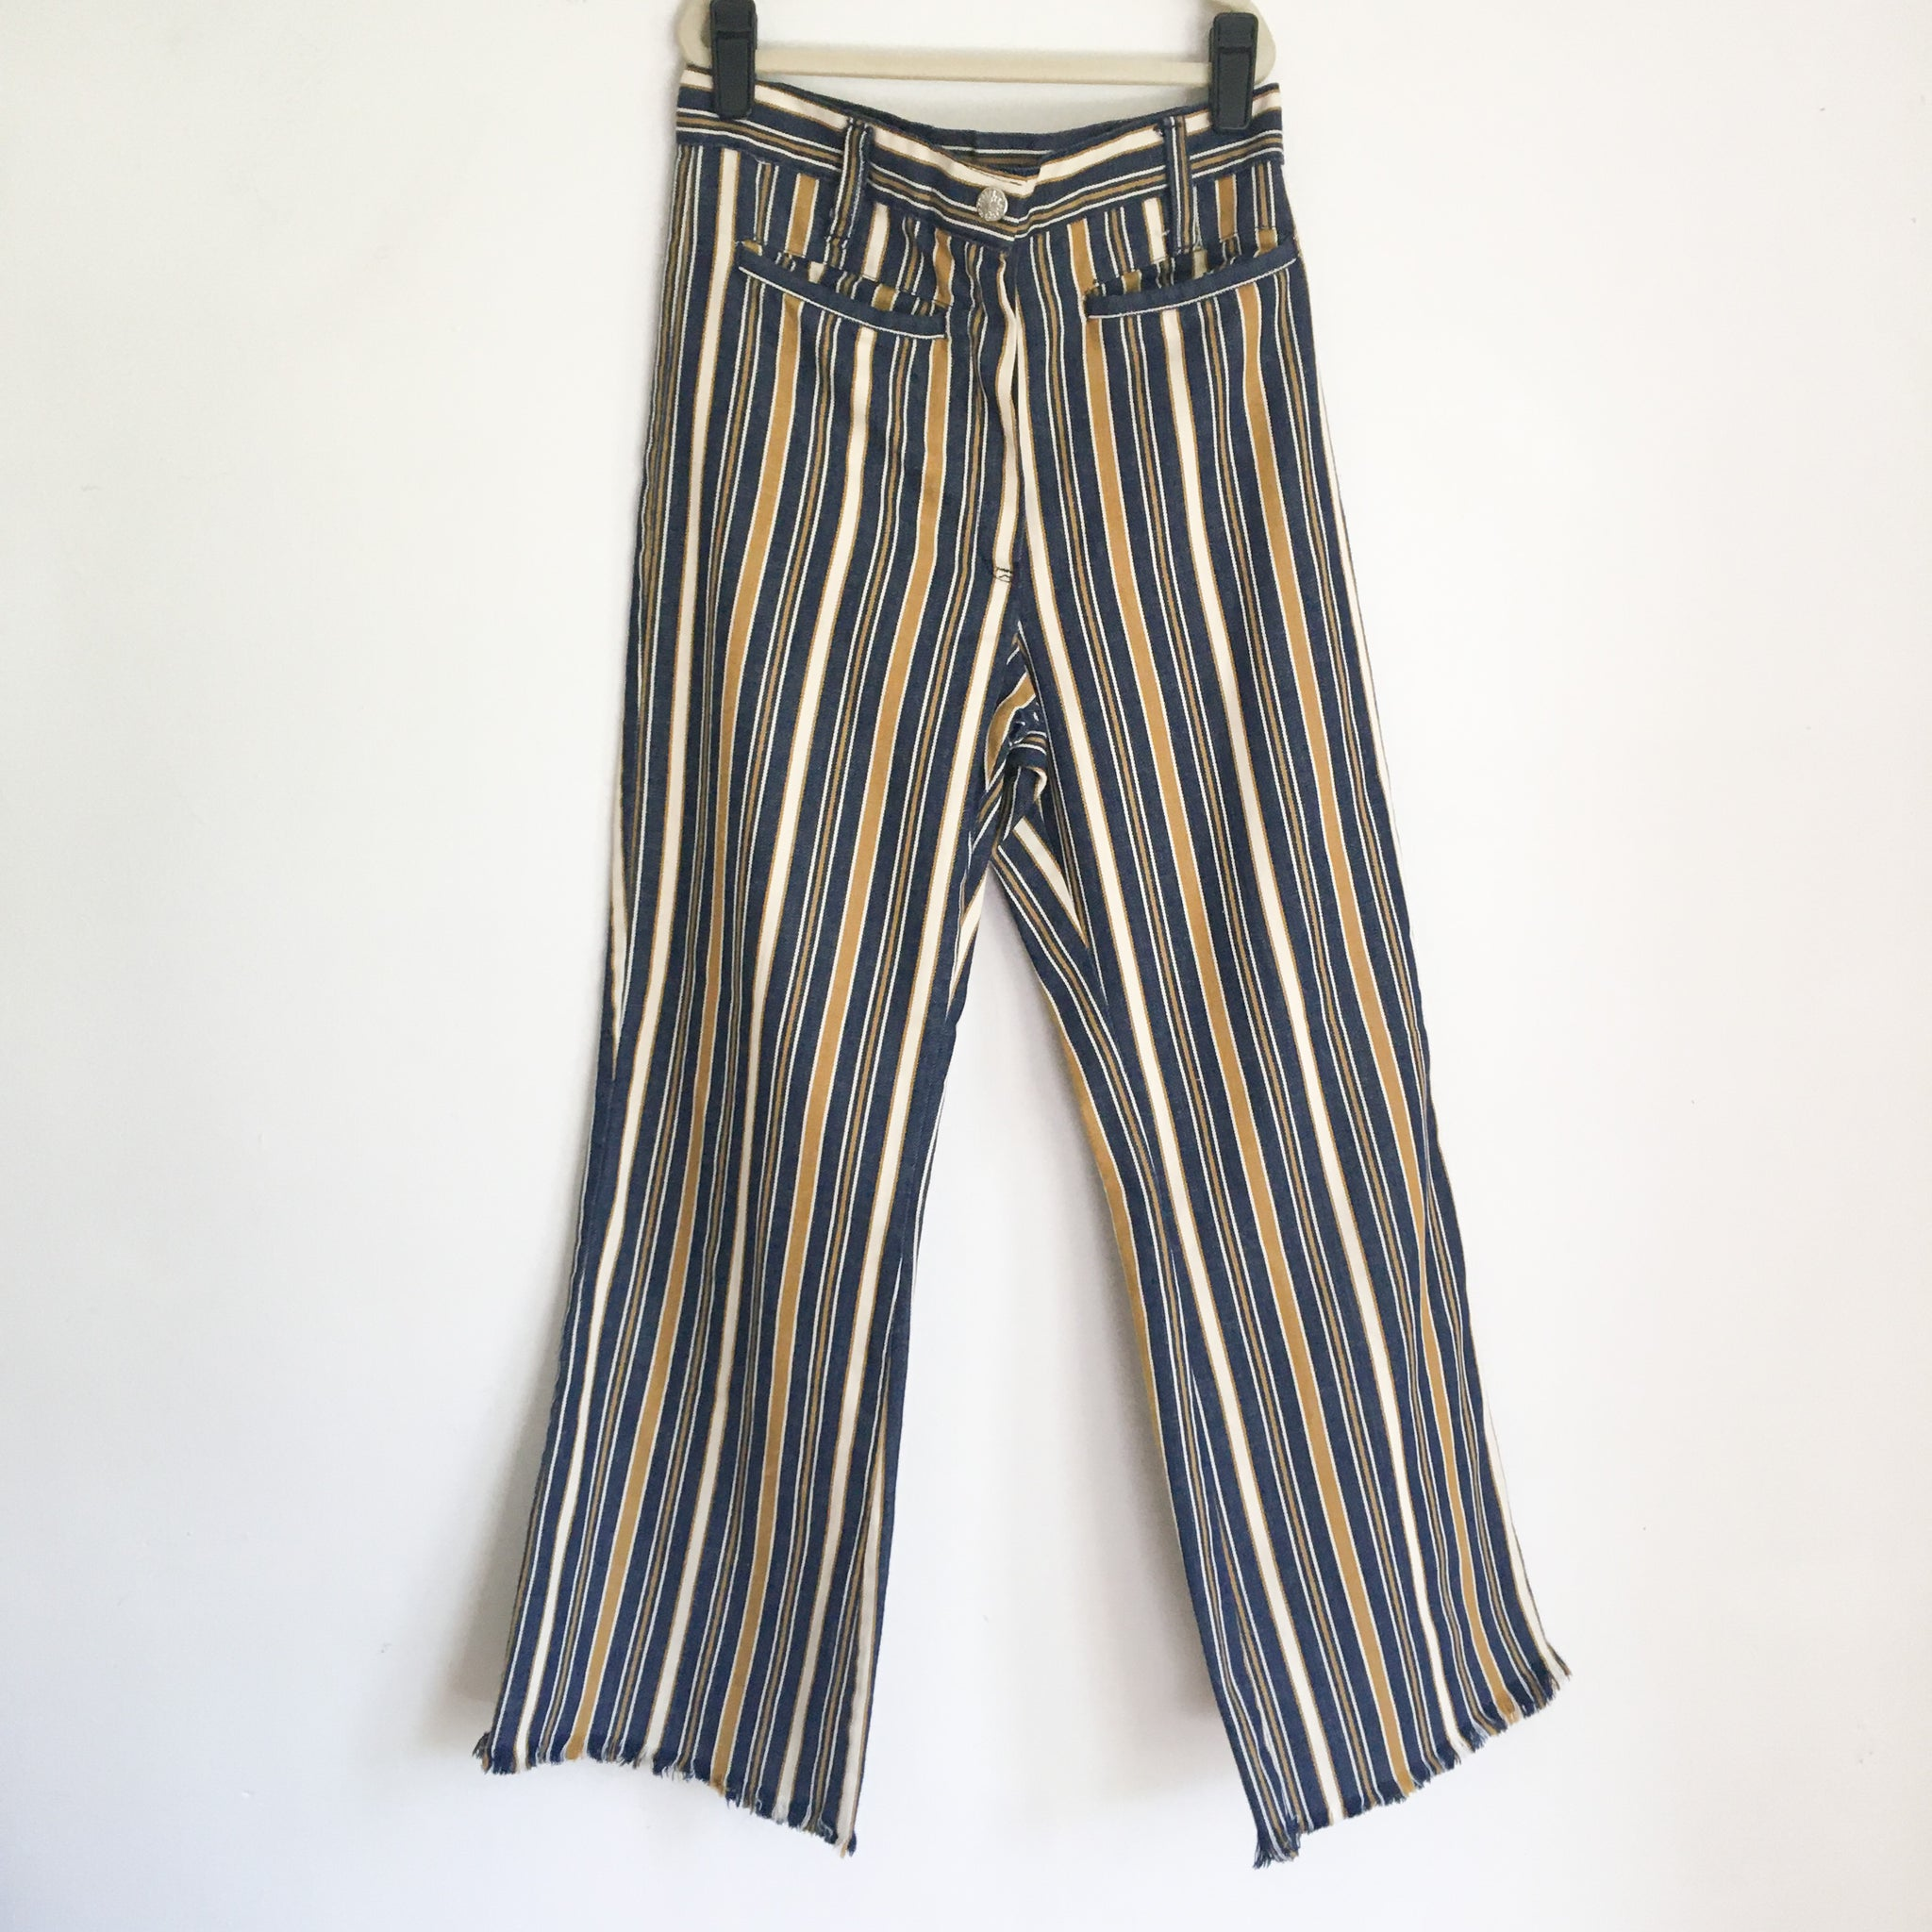 Vintage 1960s Striped Bell Bottoms / 9-10x